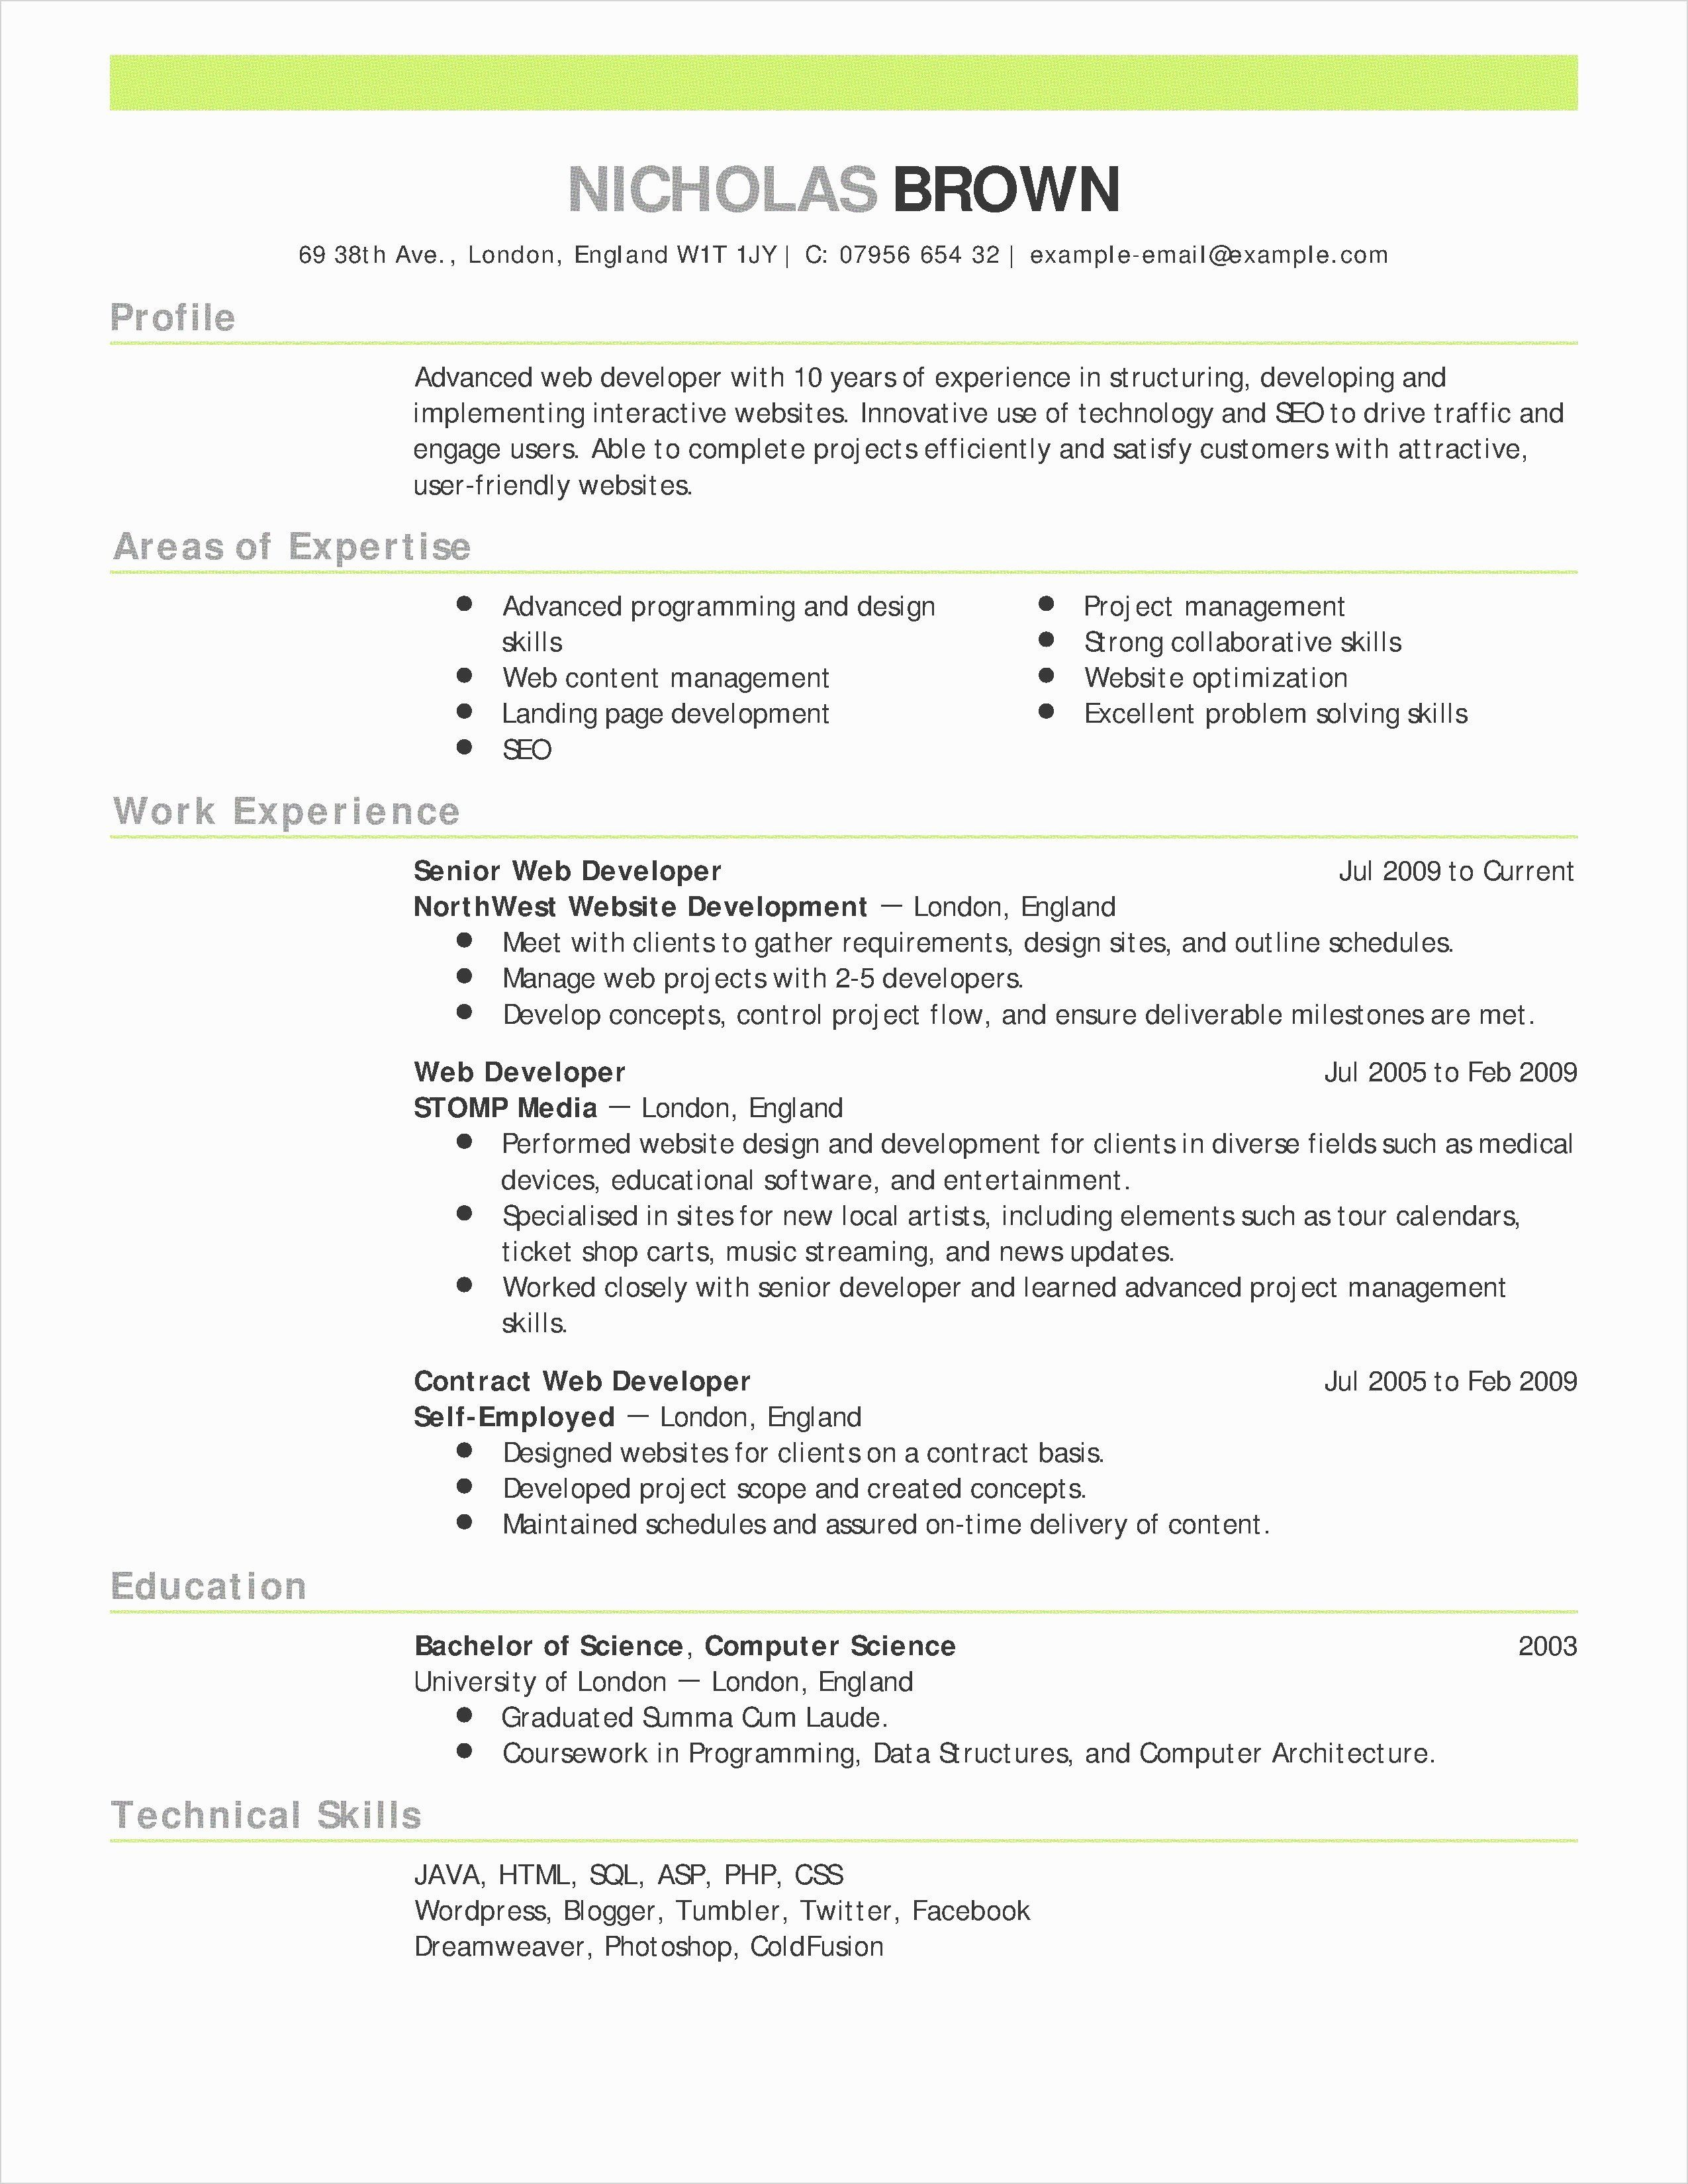 25 Resume Tips For College Students Busradio Resume Samples Regarding College Student Resume Te Student Resume Template Teacher Resume Examples Resume Skills